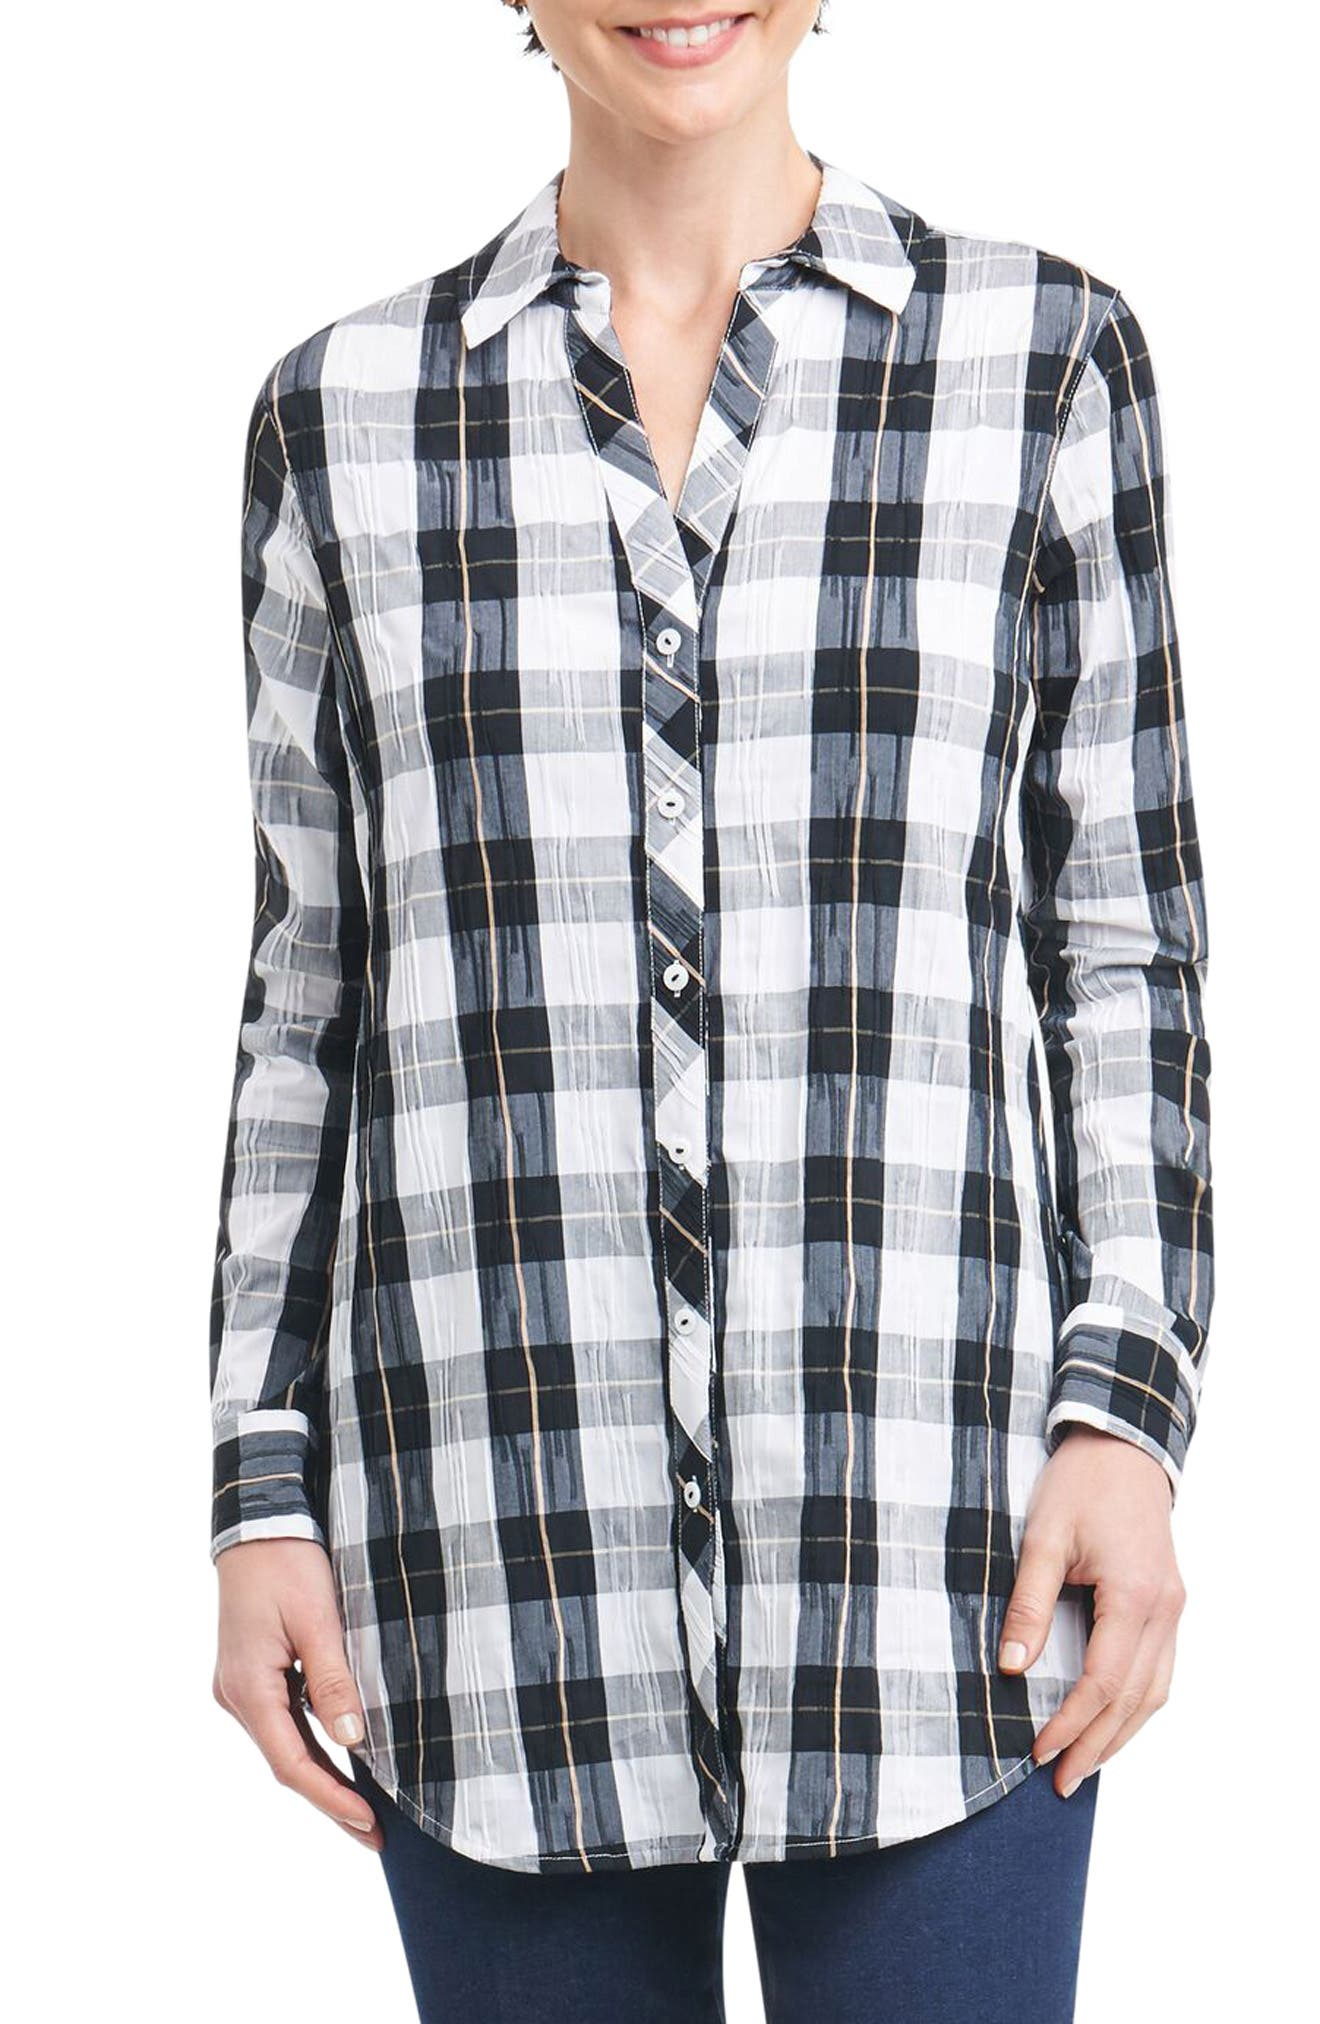 Fay Crinkle Plaid Stretch Cotton Blend Tunic Shirt,                             Main thumbnail 1, color,                             Black